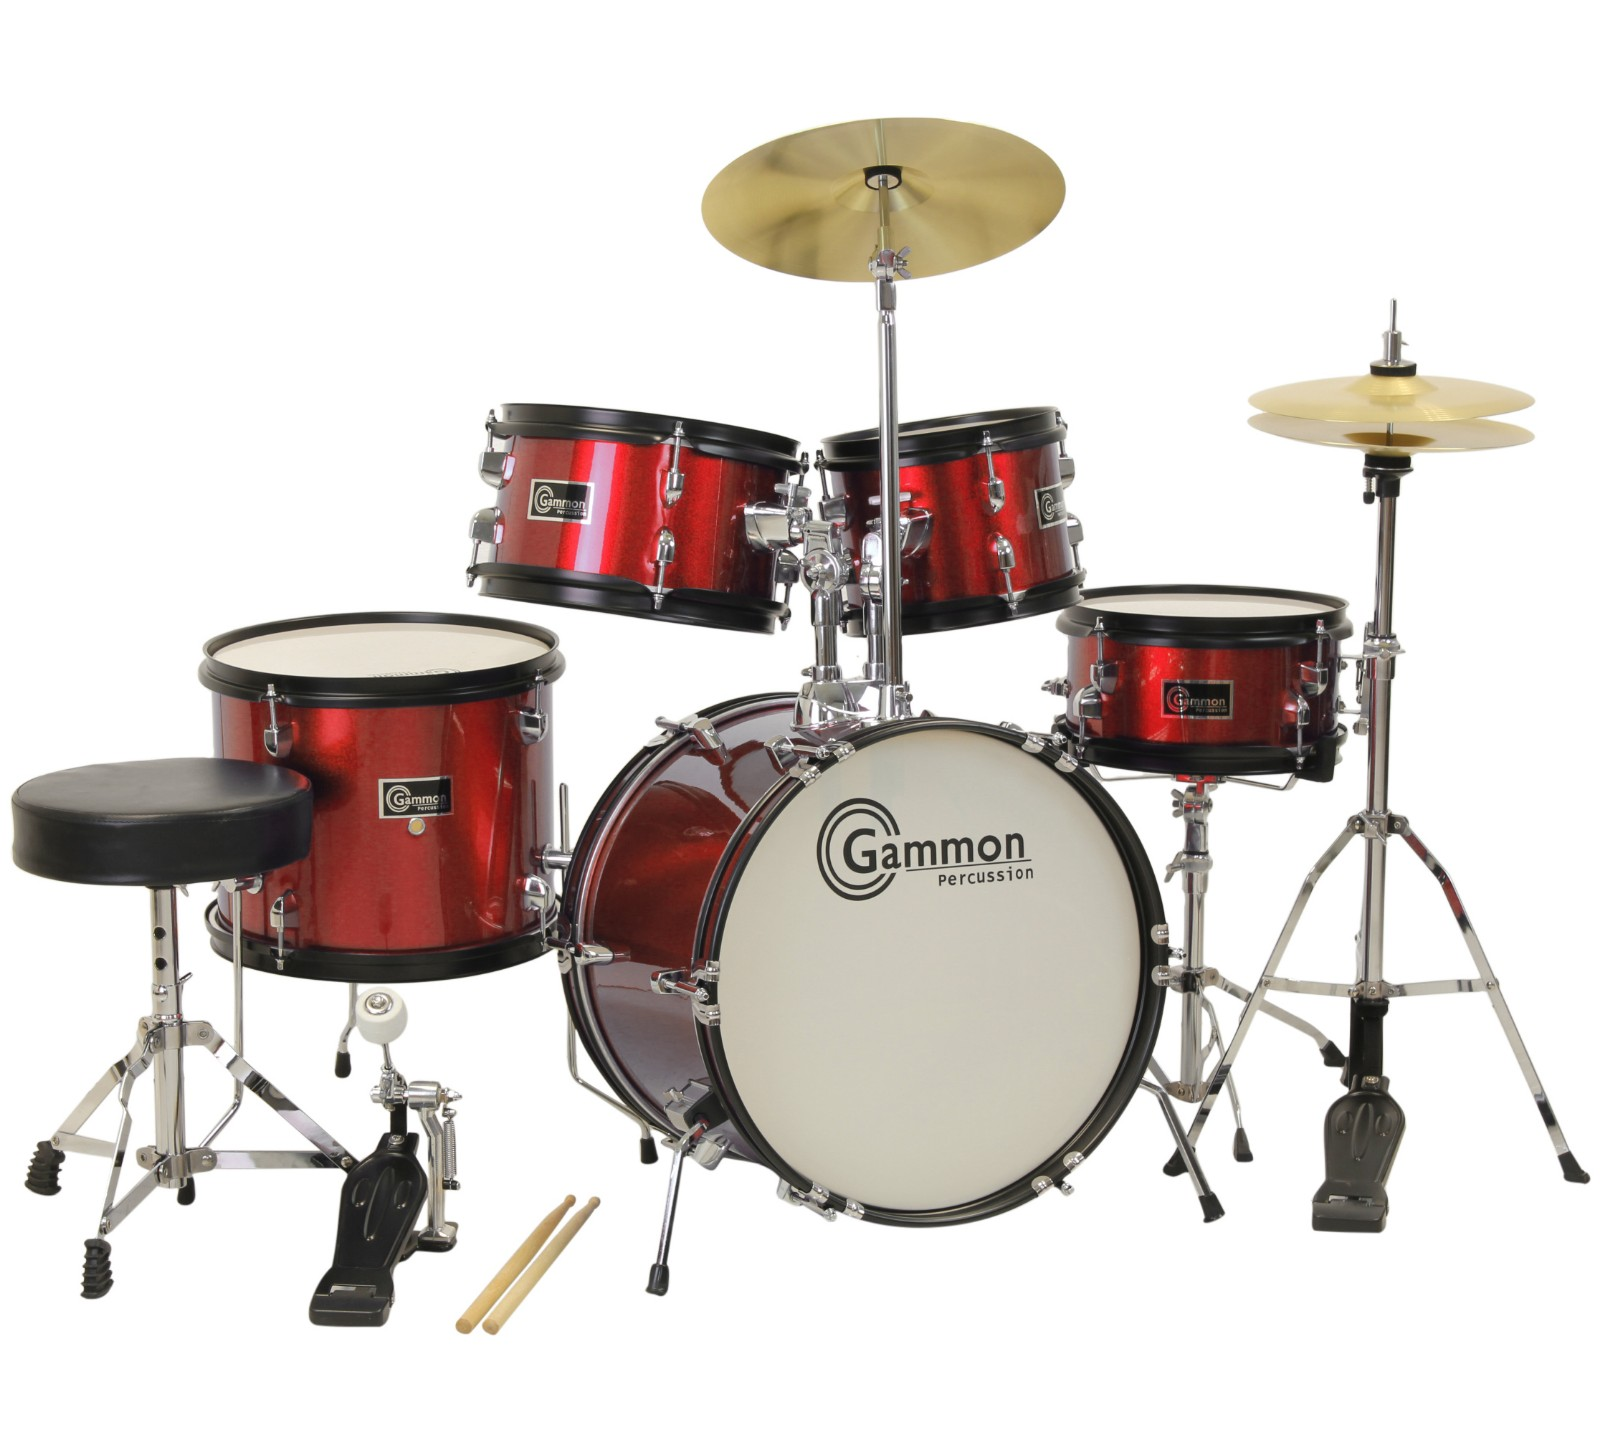 Gammon Drum Set Red Complete Junior Kit With Cymbals Sticks Hardware And Stool